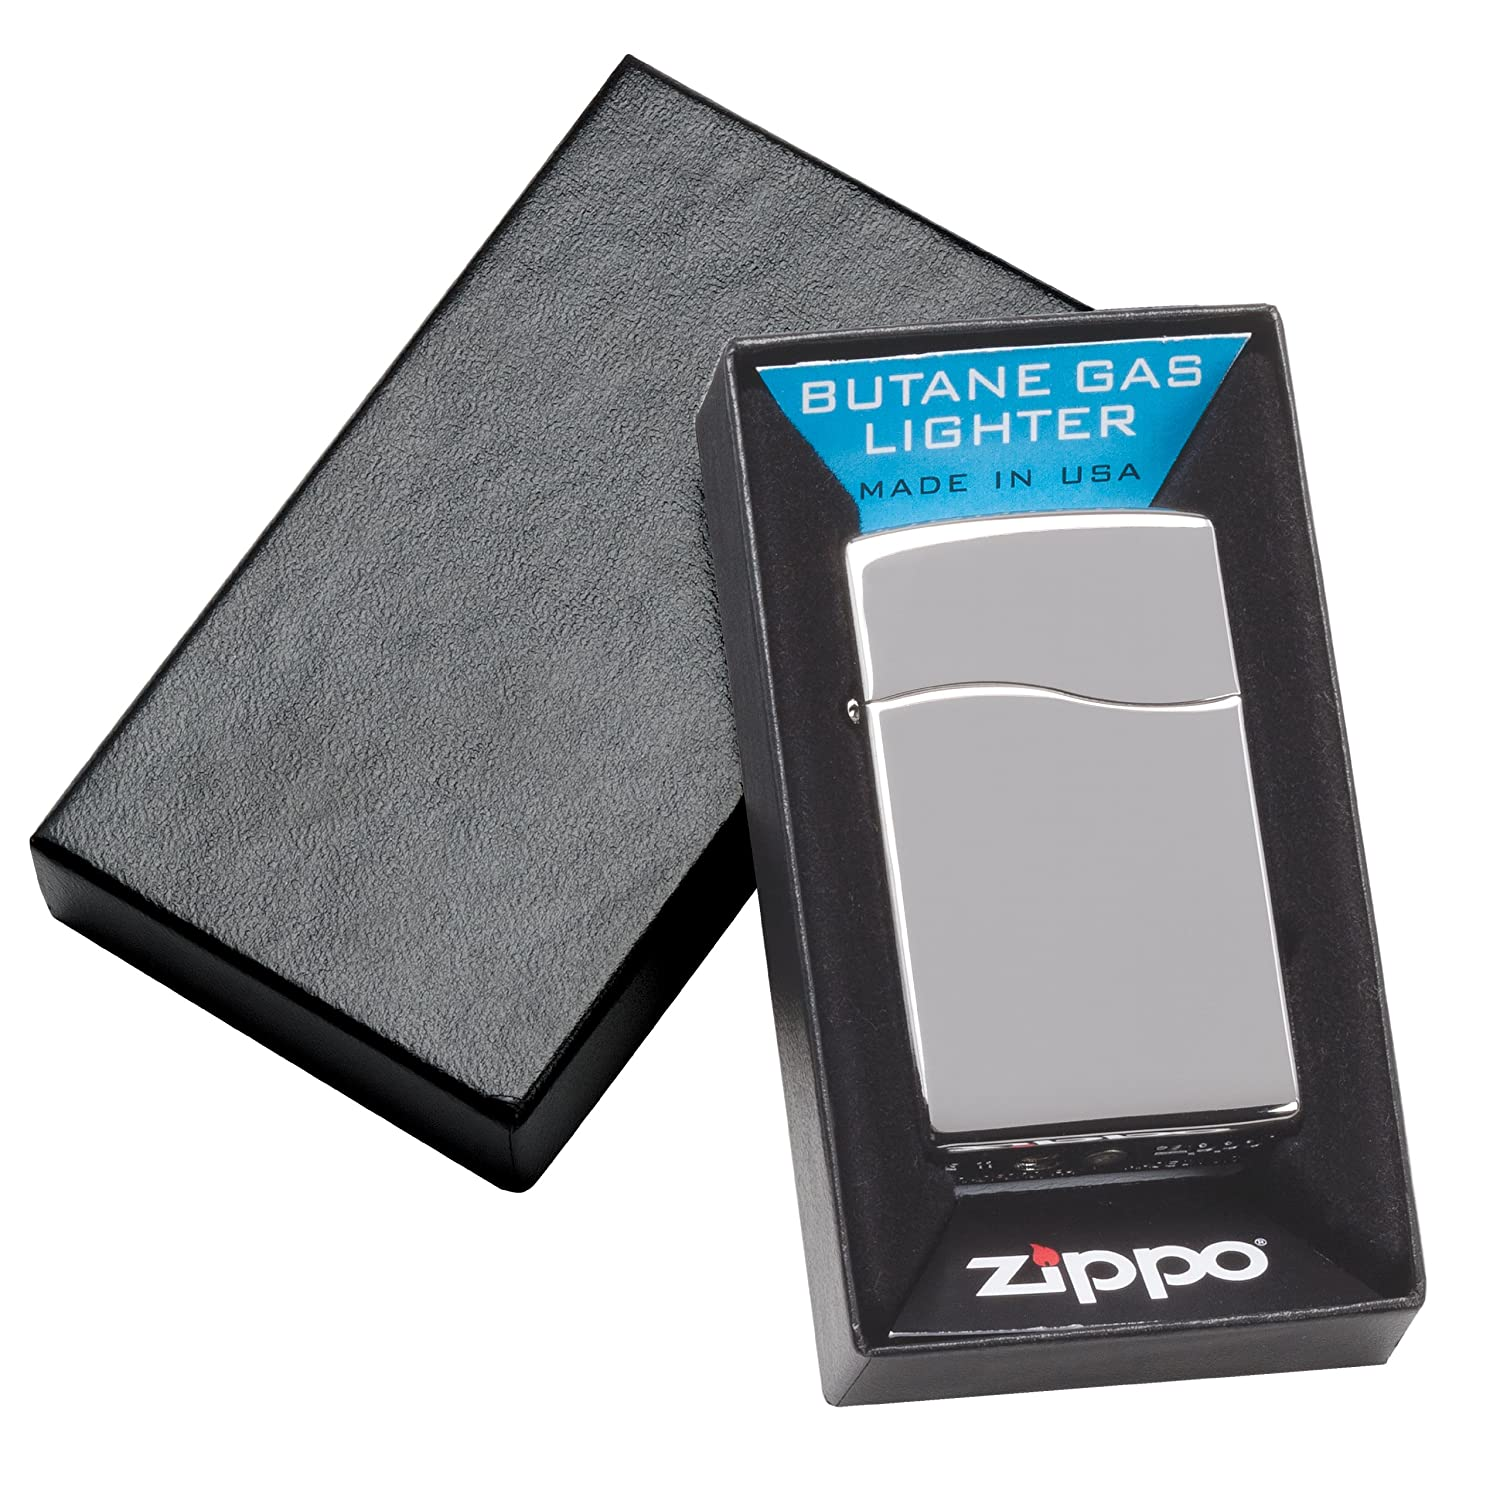 Zippo High Polish Chrome BLU2 Silver Lighter (4 1/4 x 2 1/4-Inch)